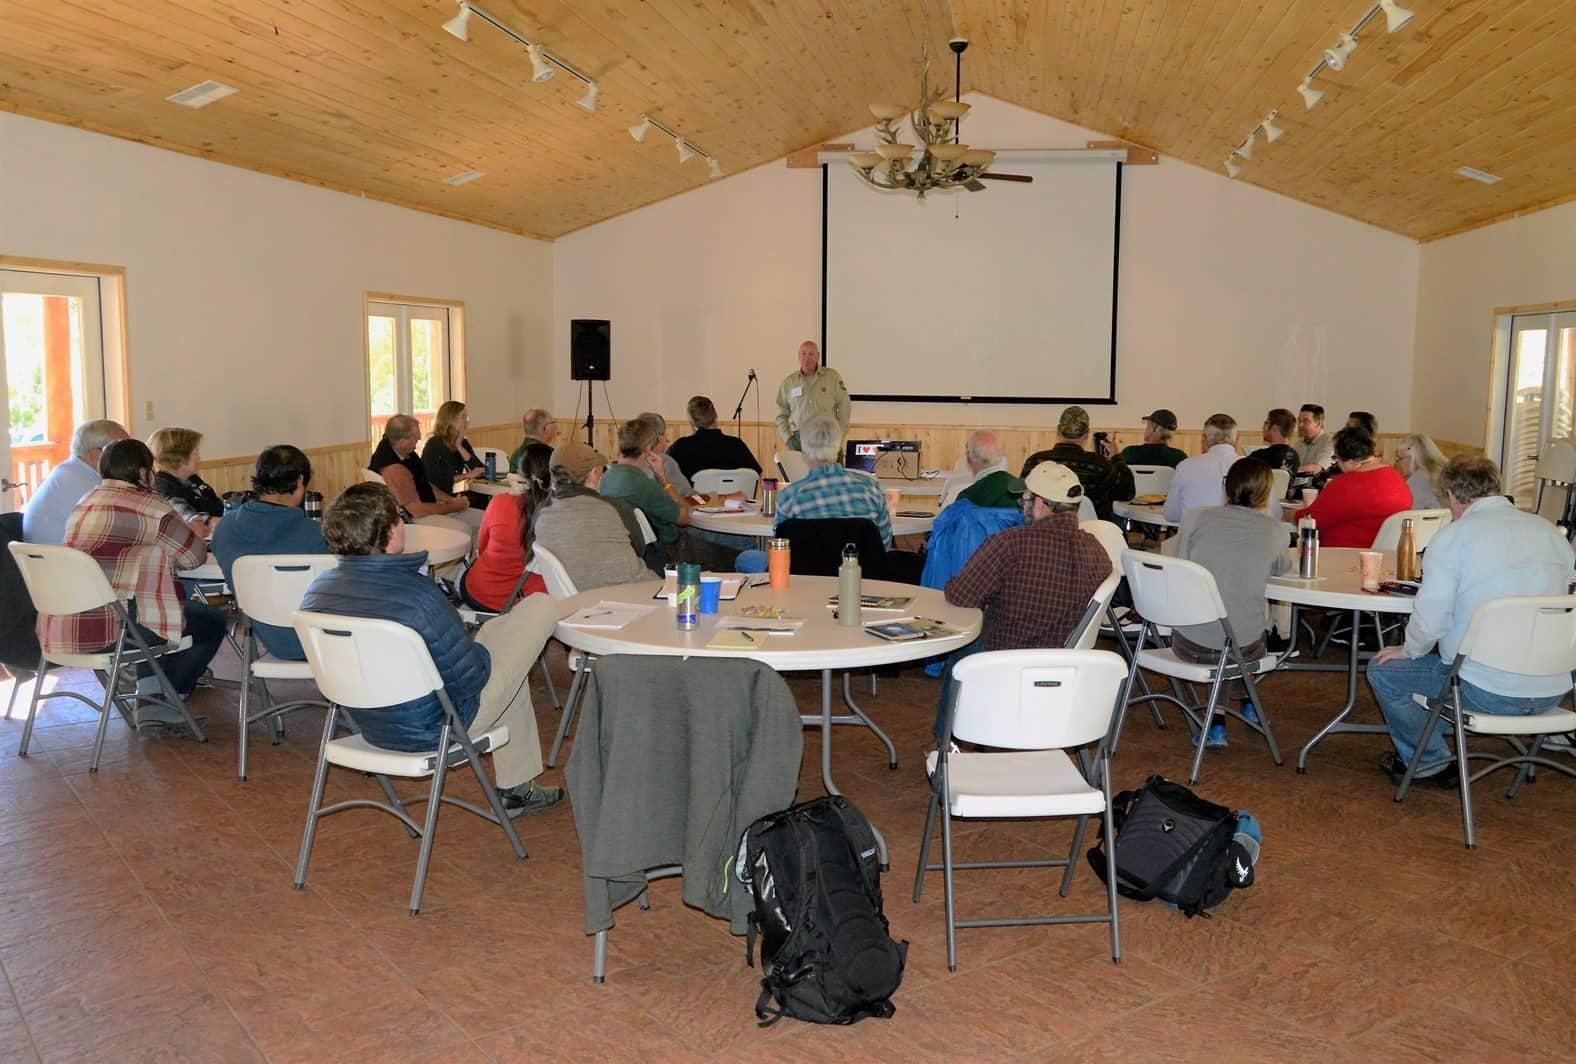 Event attendees listening to a presentation on ponderosa pine and the timber economy